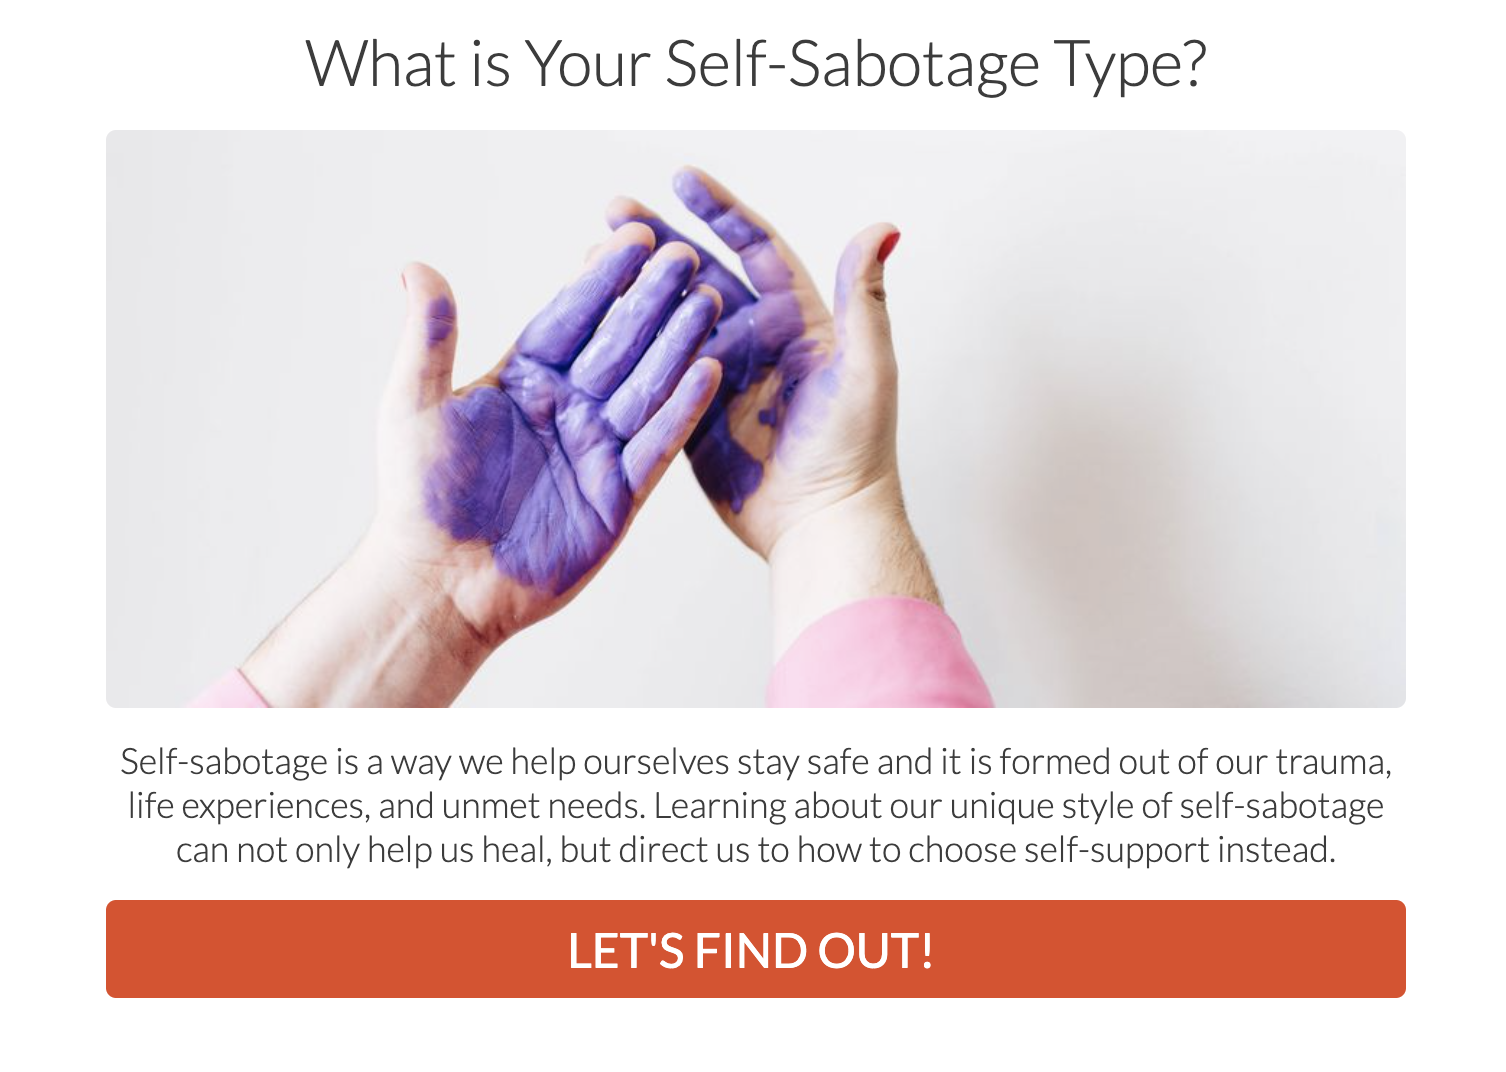 what is your self-sabotage type quiz cover